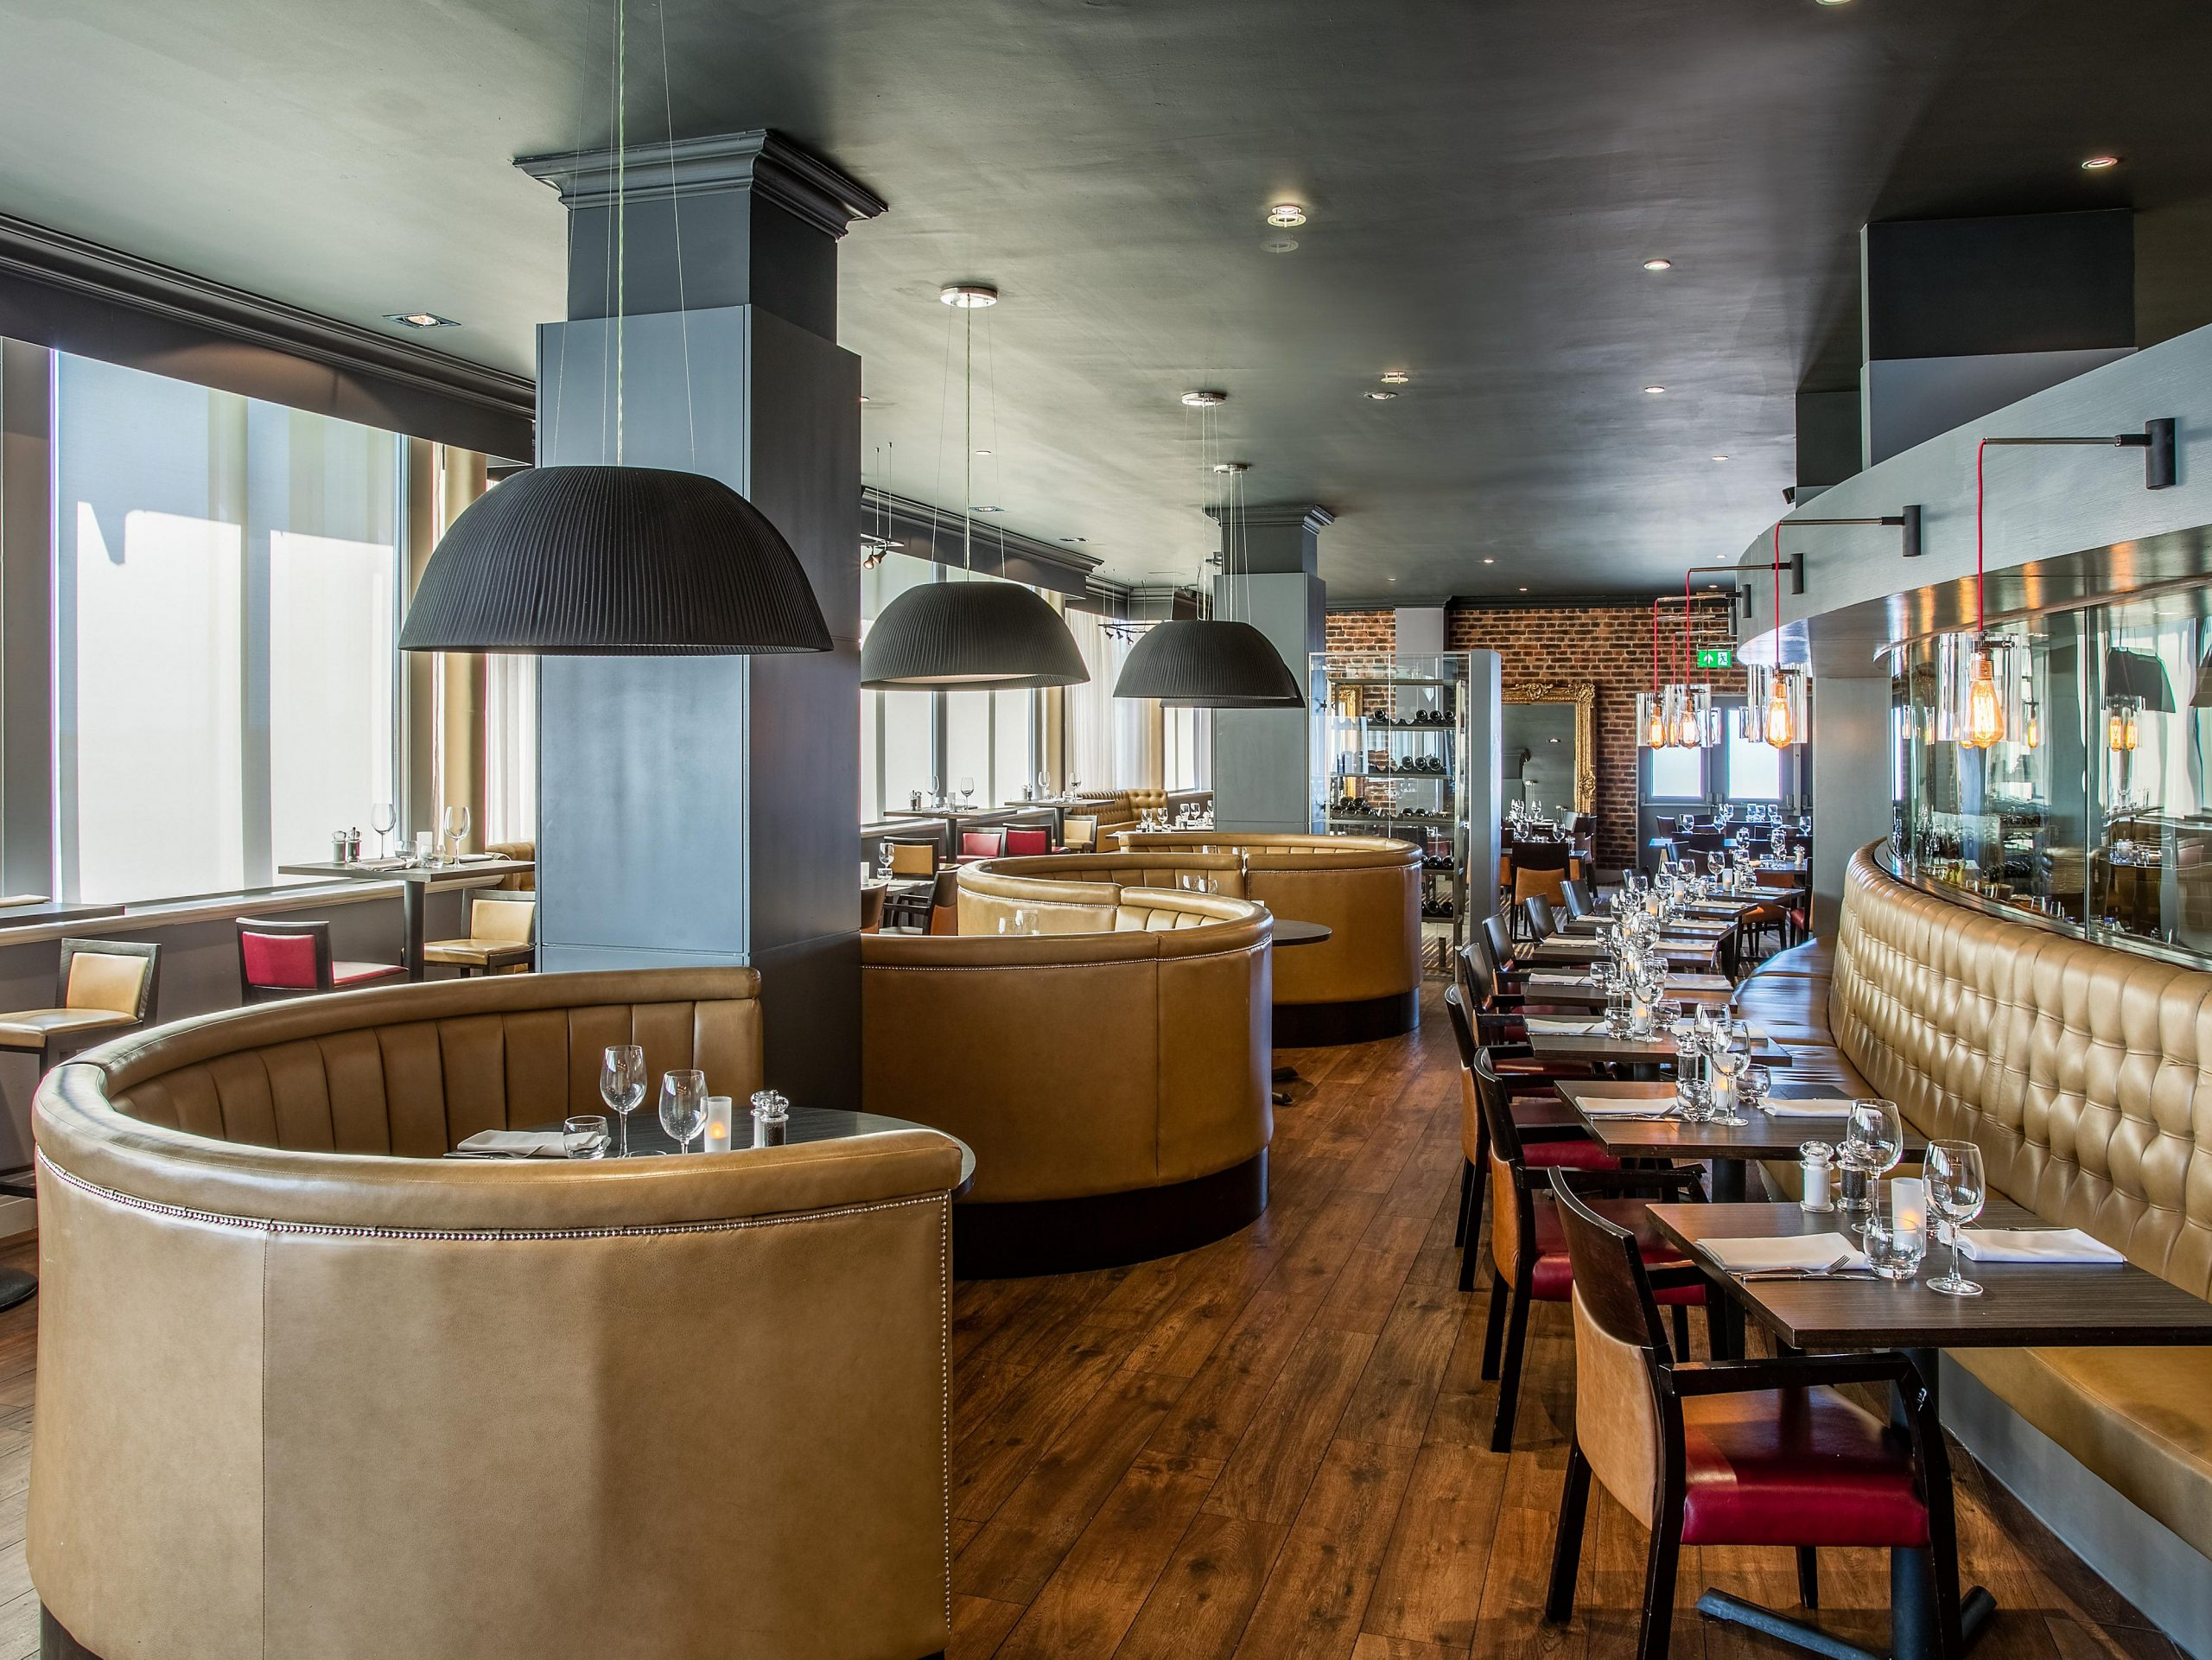 The Hotel Review: Crowne Plaza Chester